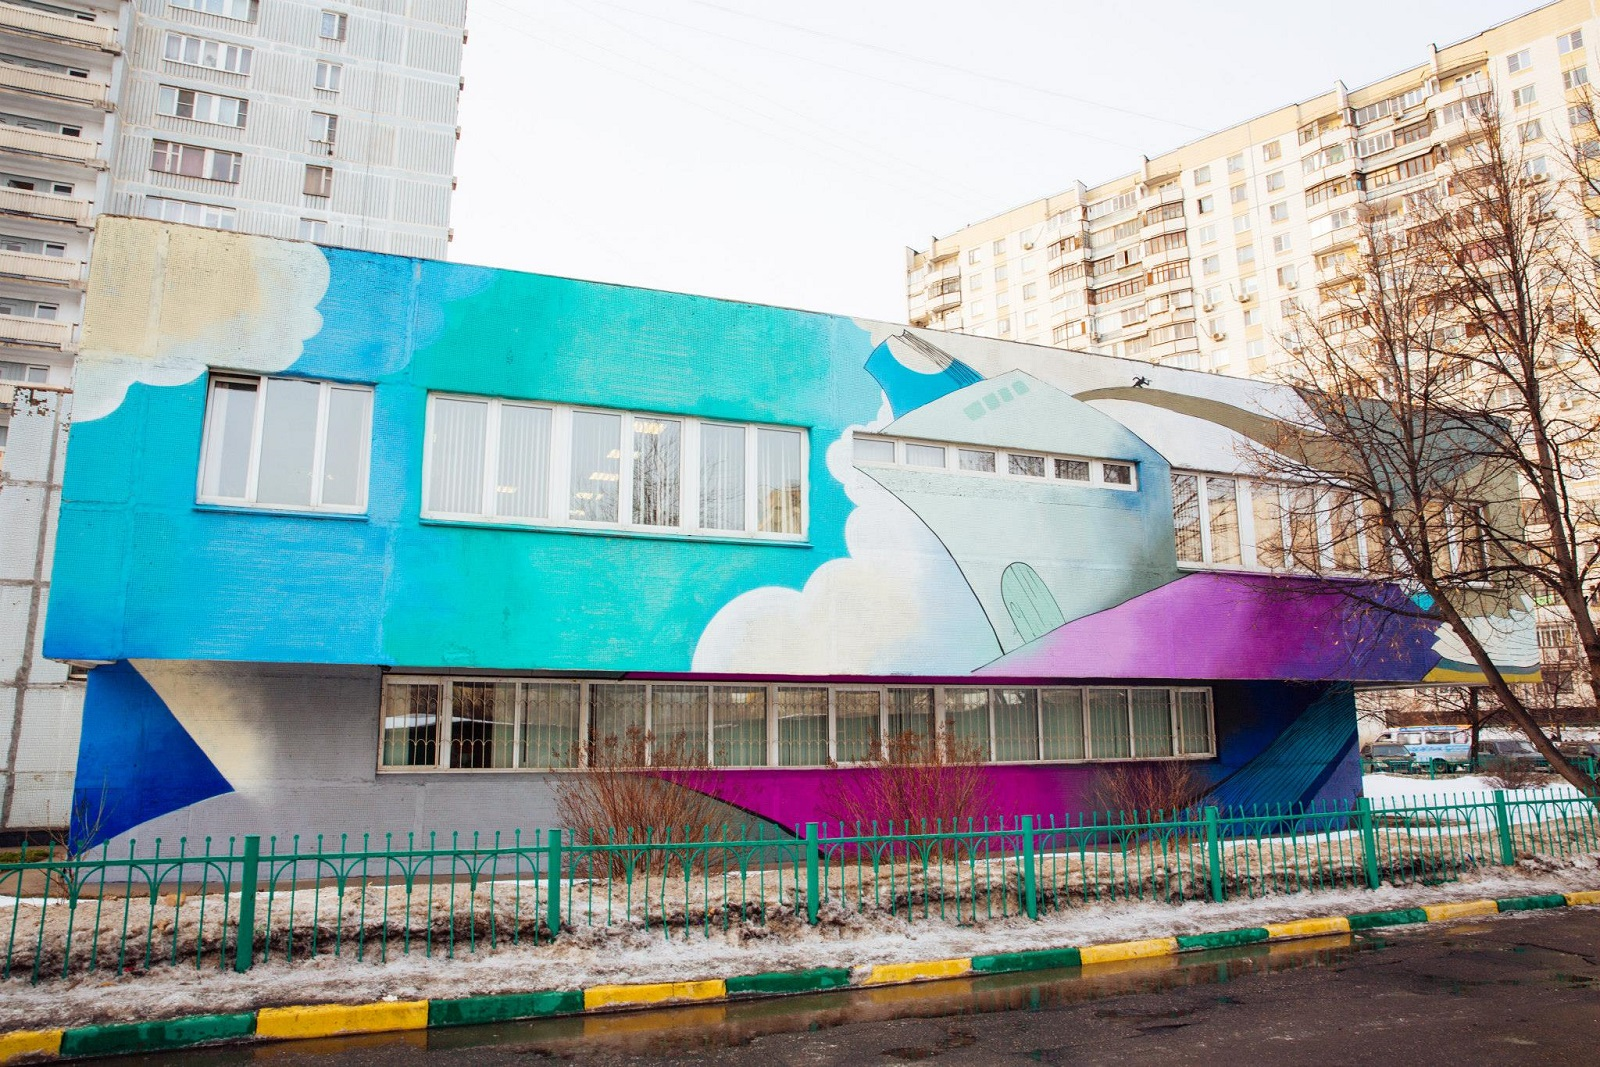 eloom-new-mural-in-mosca-04